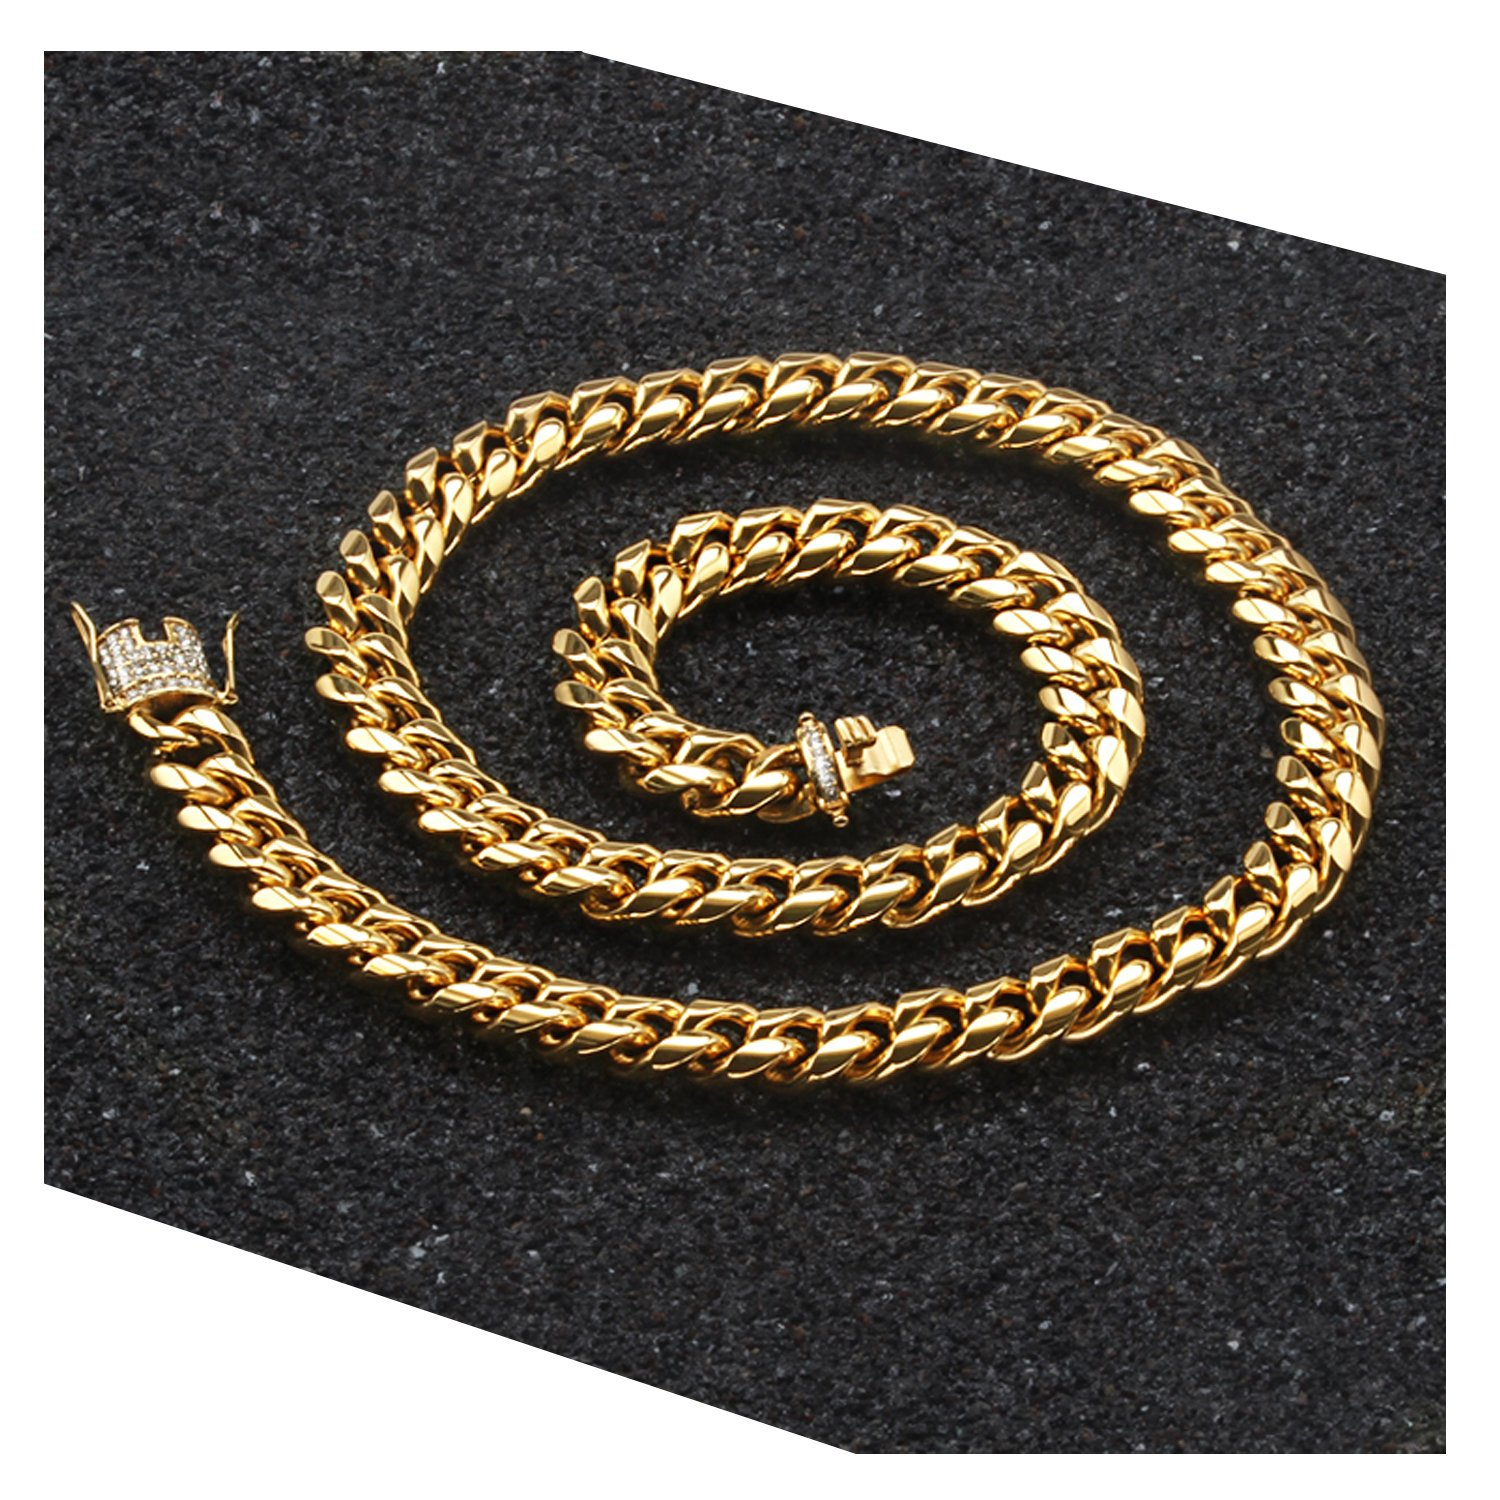 chains yellow gold men link com from mens chain pure dhgate s wholesale heavy curb new necklace bfsvcb boss product